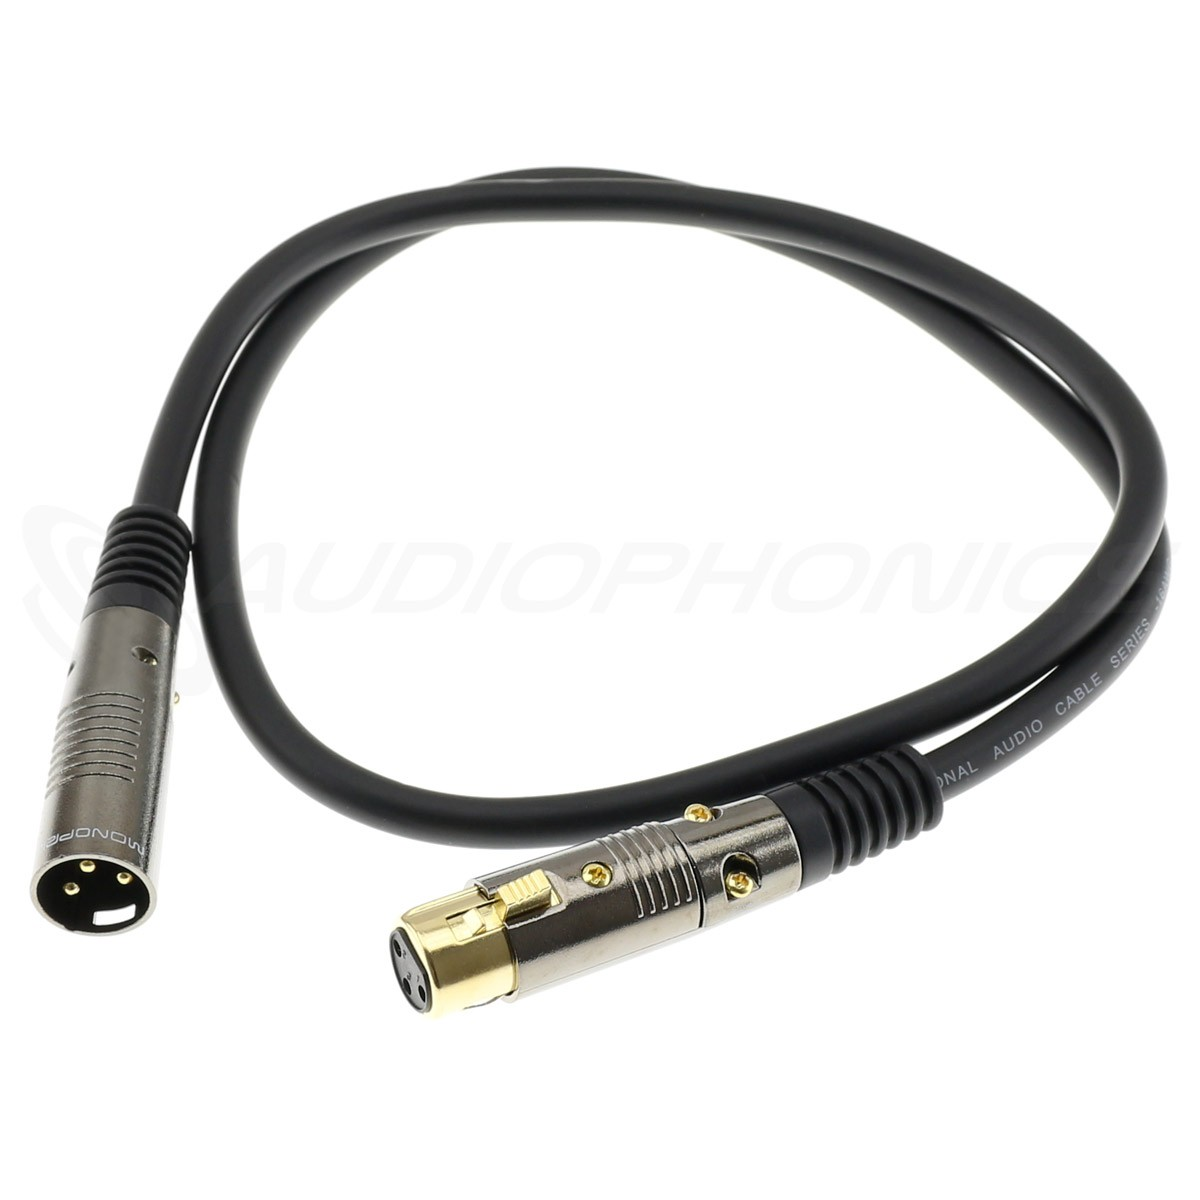 Interconnect Cable Female XLR to Male XLR Gold Plated 1.31mm² 0.9m